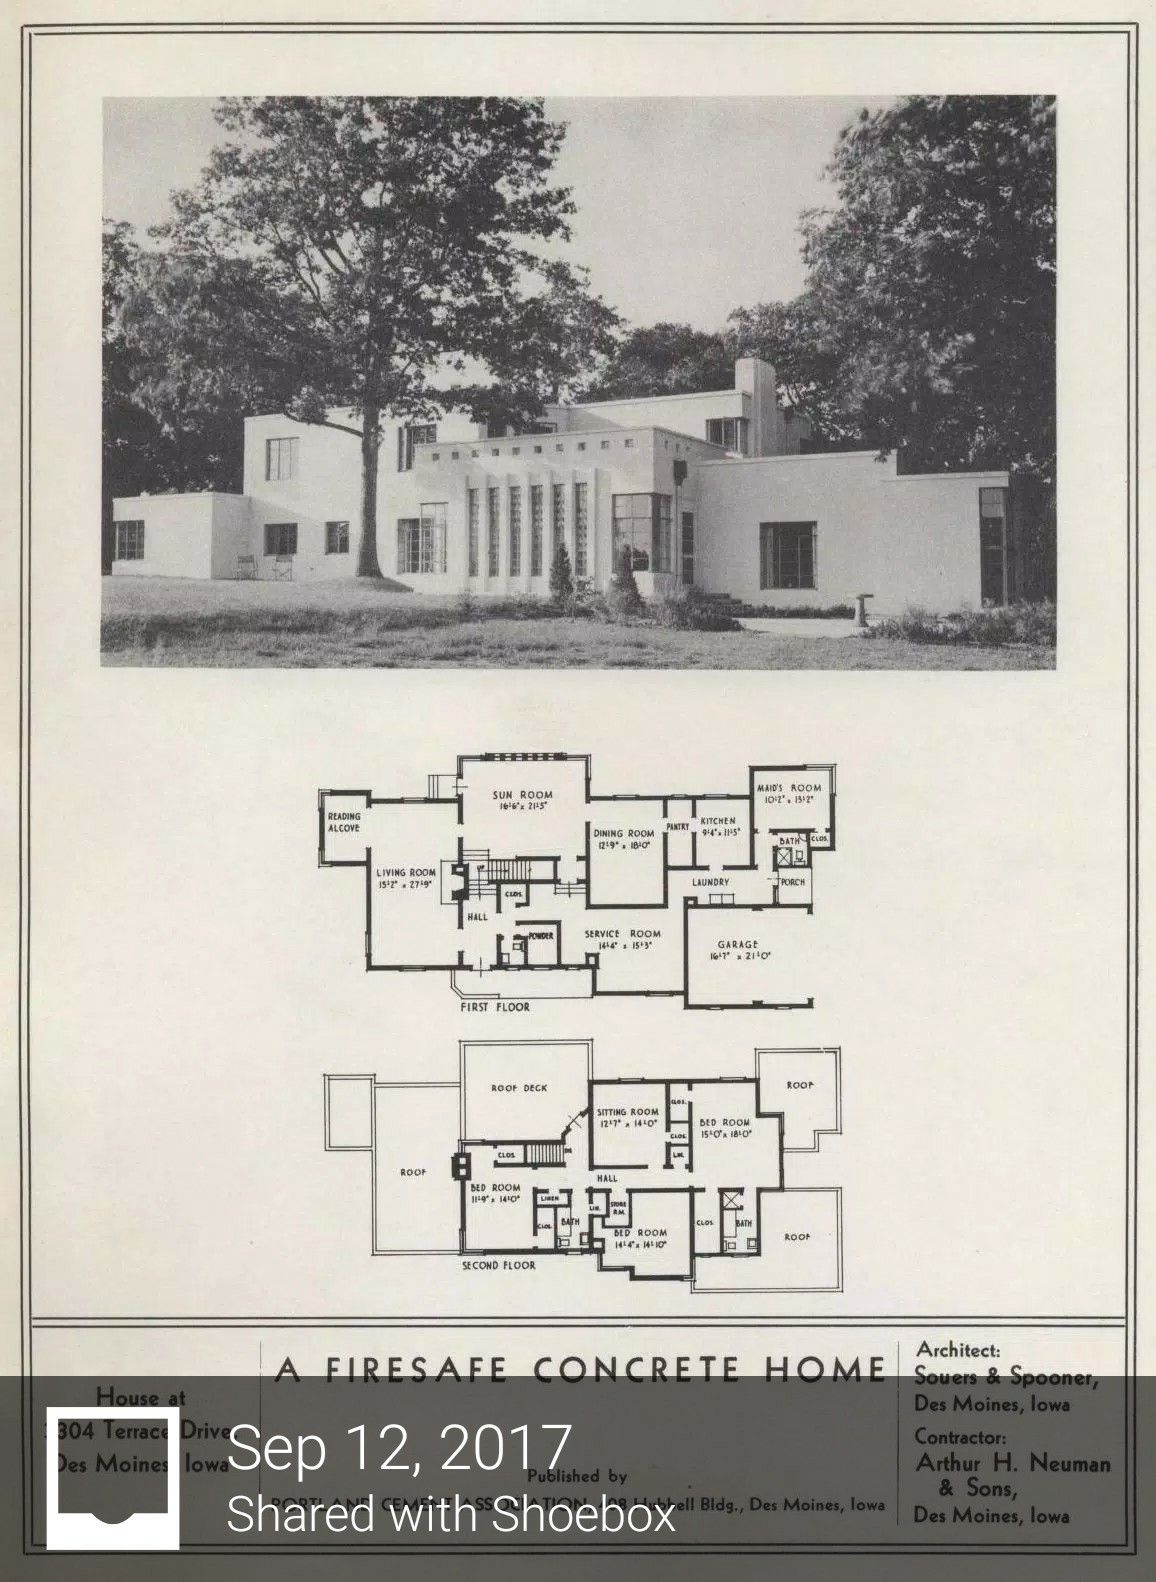 Pin By G On Mid Century Modern Concrete Houses Streamline Moderne Architecture Art Deco Home